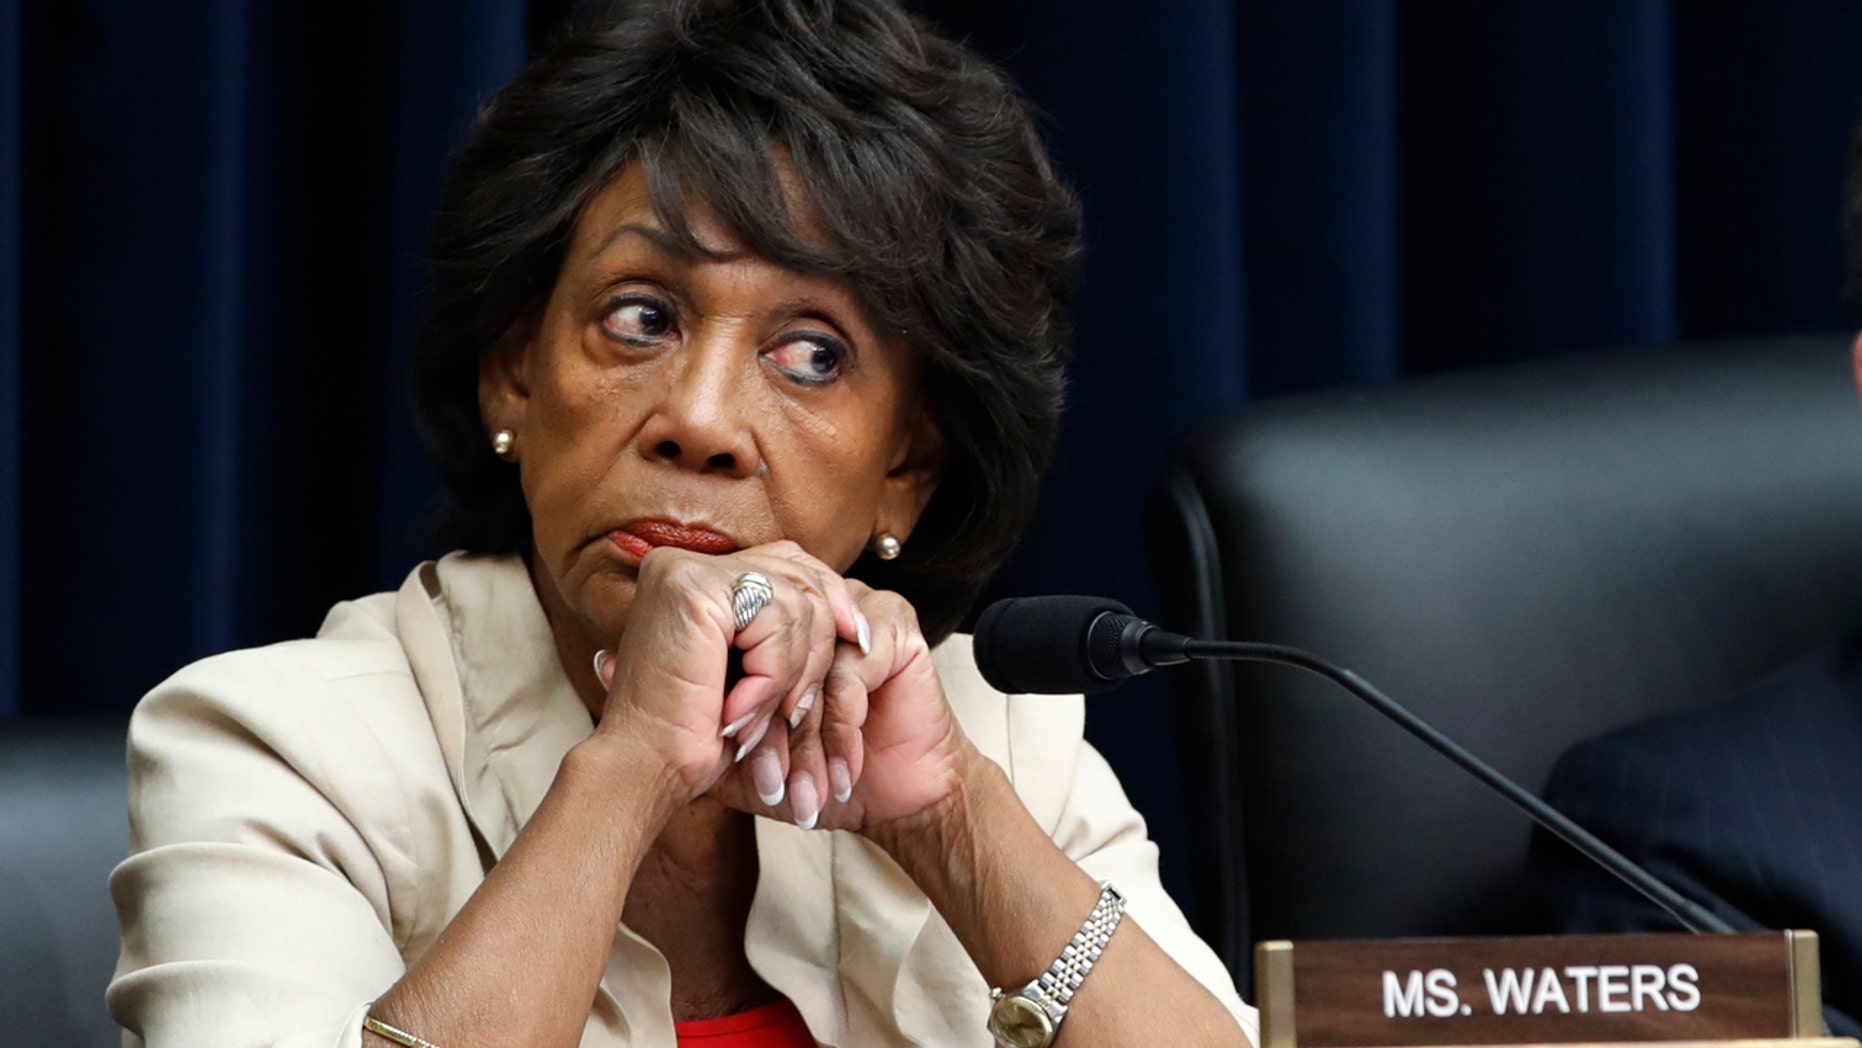 House Committee on Financial Services Ranking Member Rep. Maxine Waters, D-Calif., left, listens during a hearing, Wednesday, July 18, 2018, on Capitol Hill in Washington.